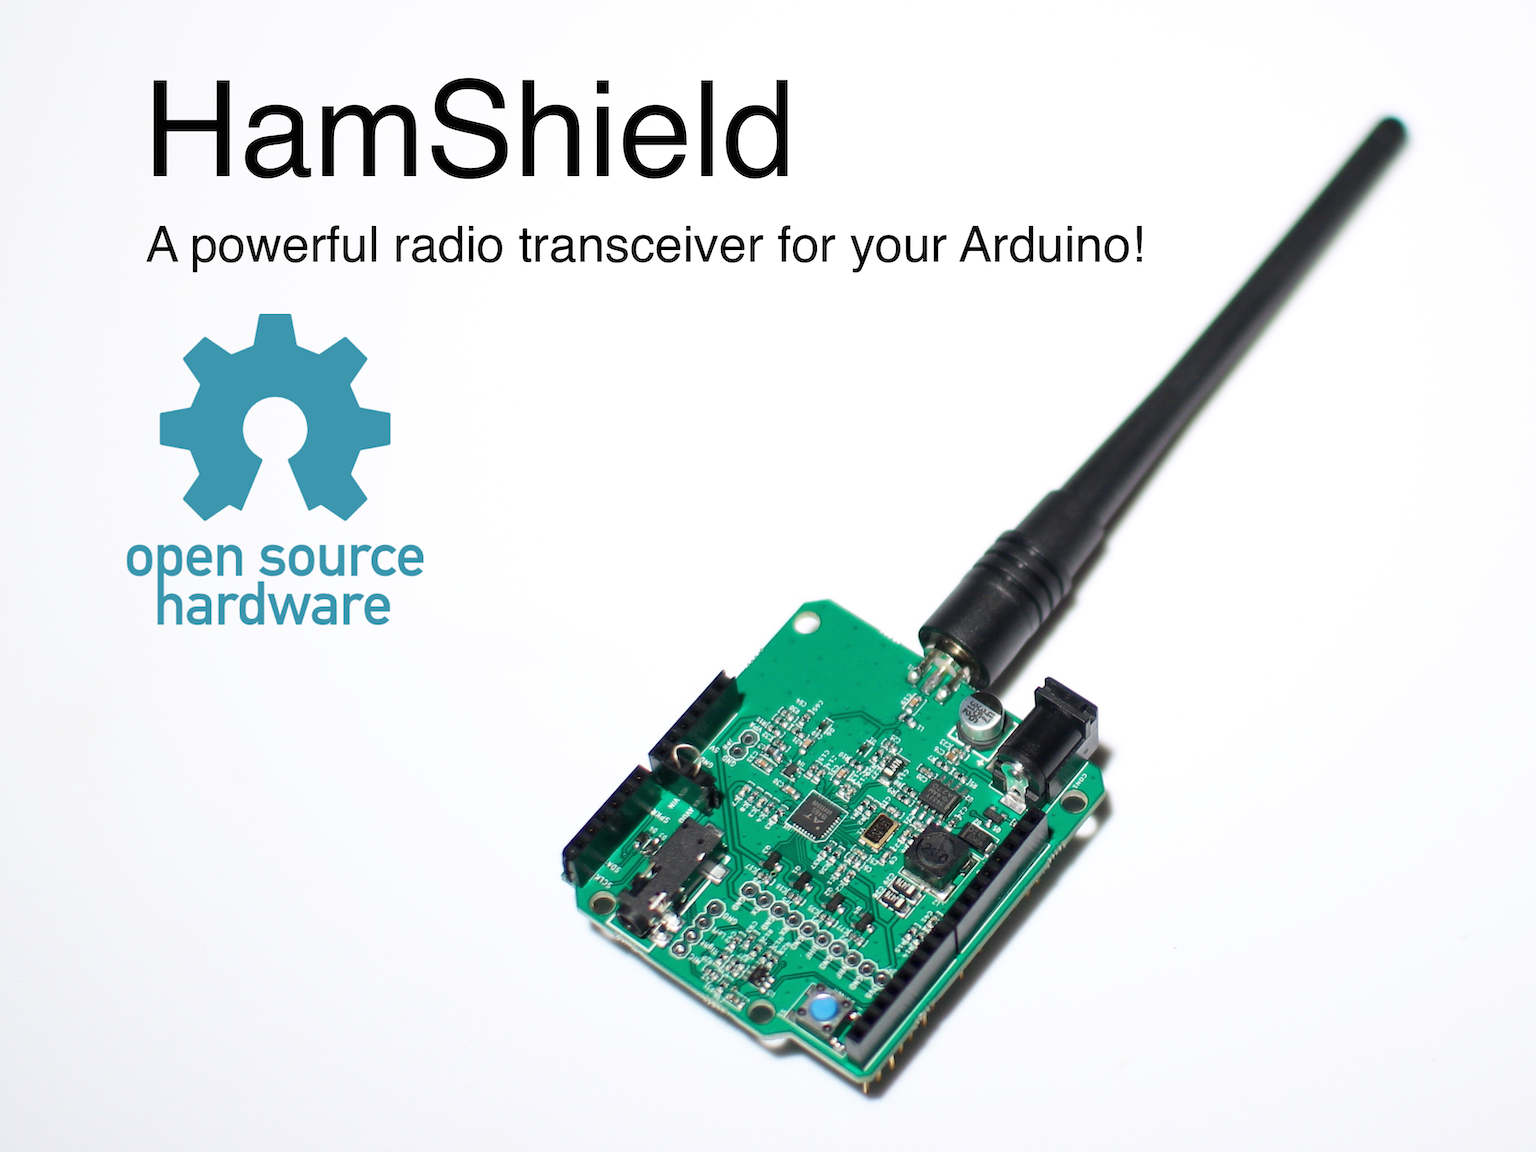 Hamshield for arduino vhf uhf transceiver by casey